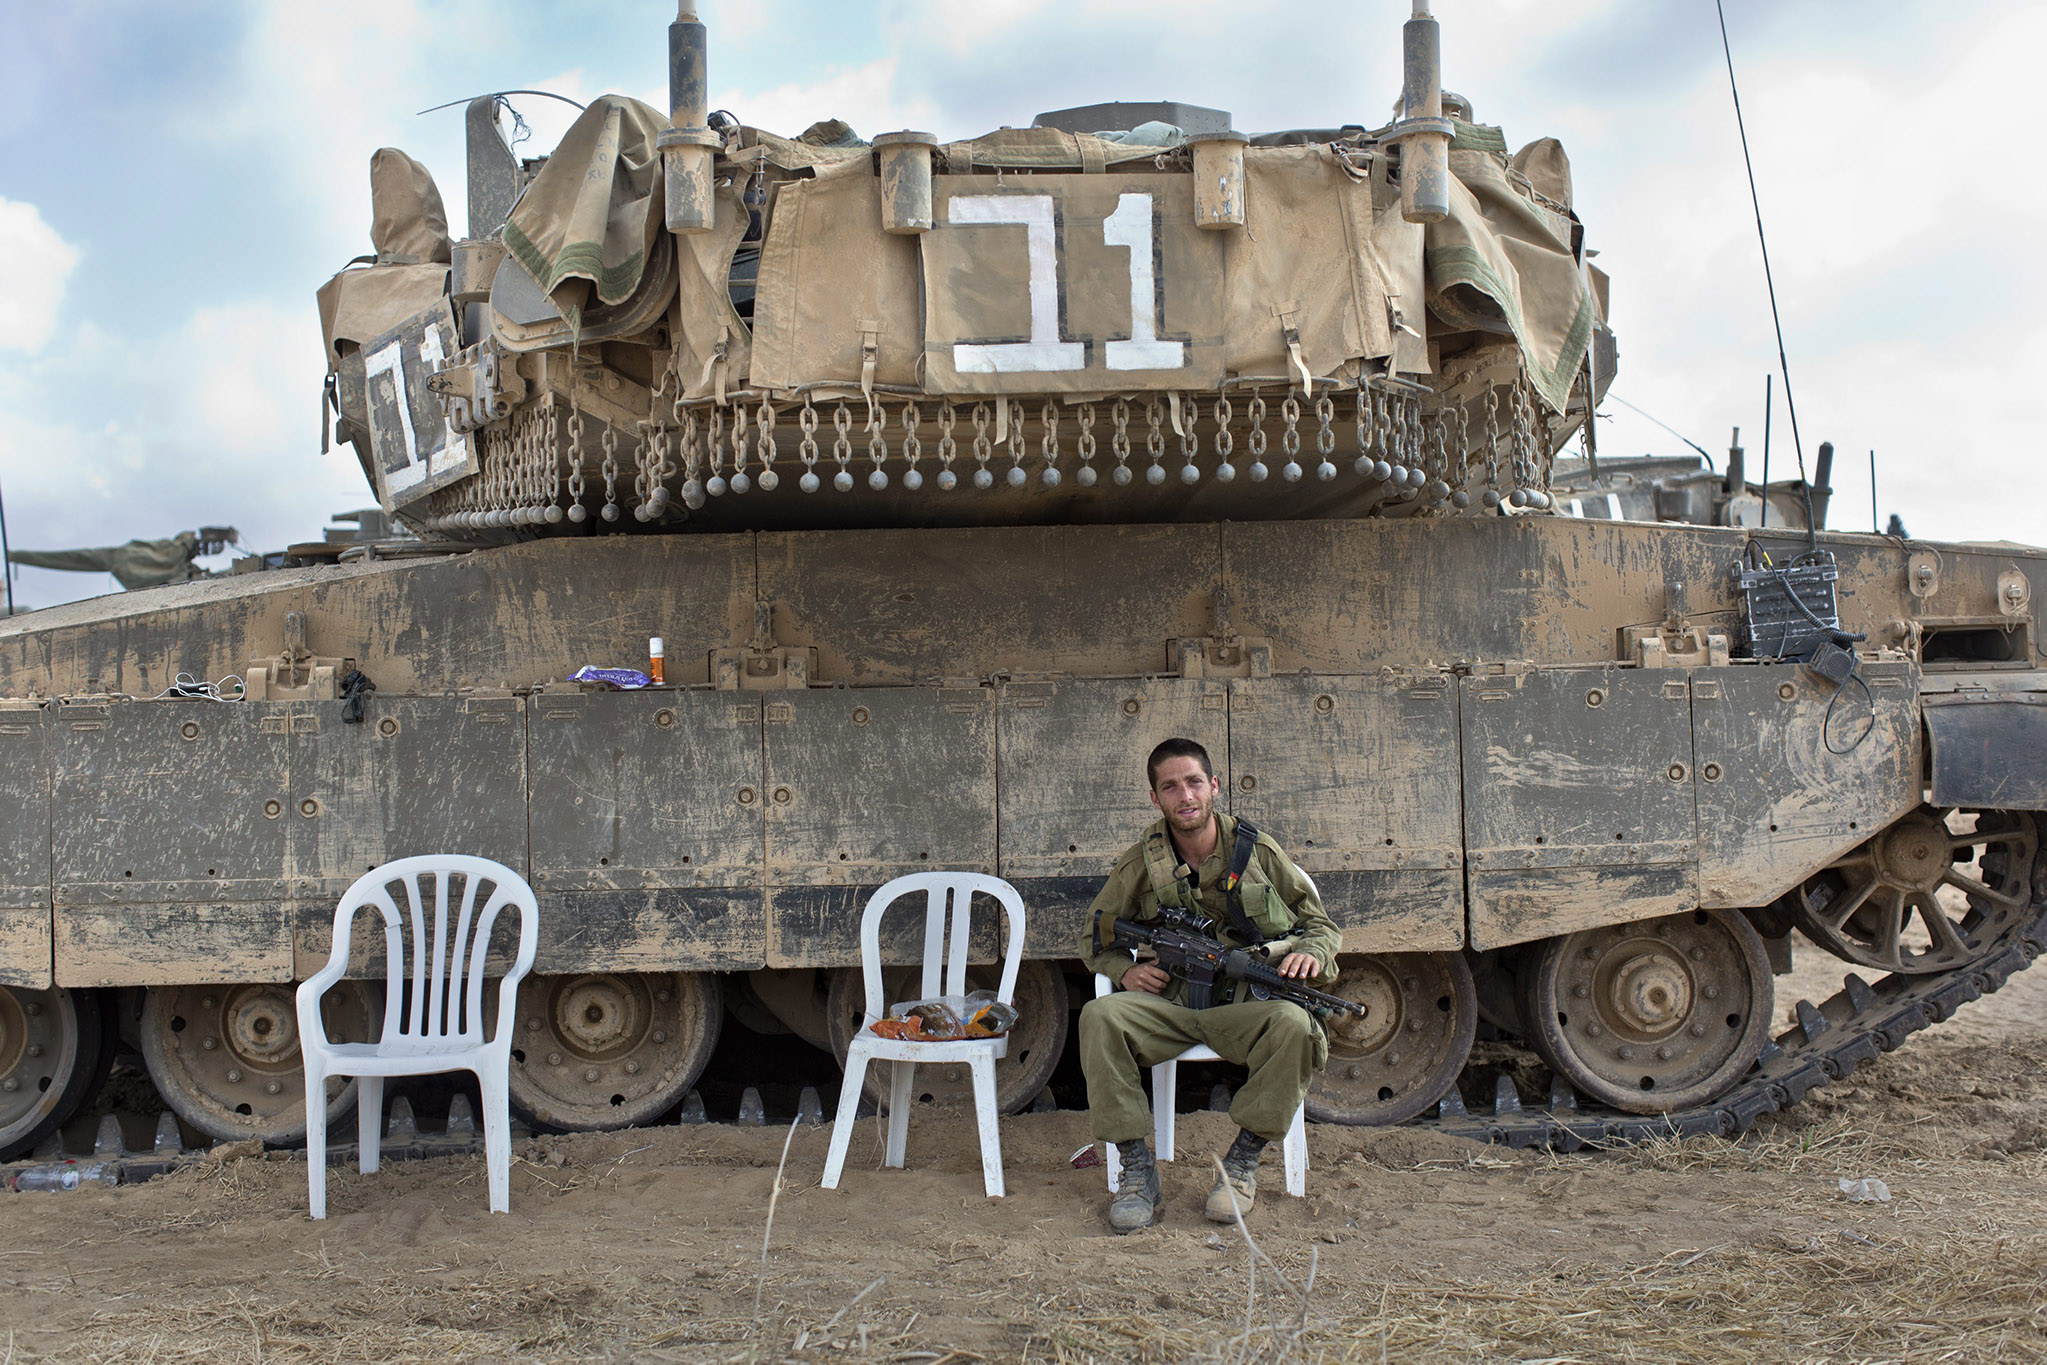 Israeli soldiers on Gaza Strip border